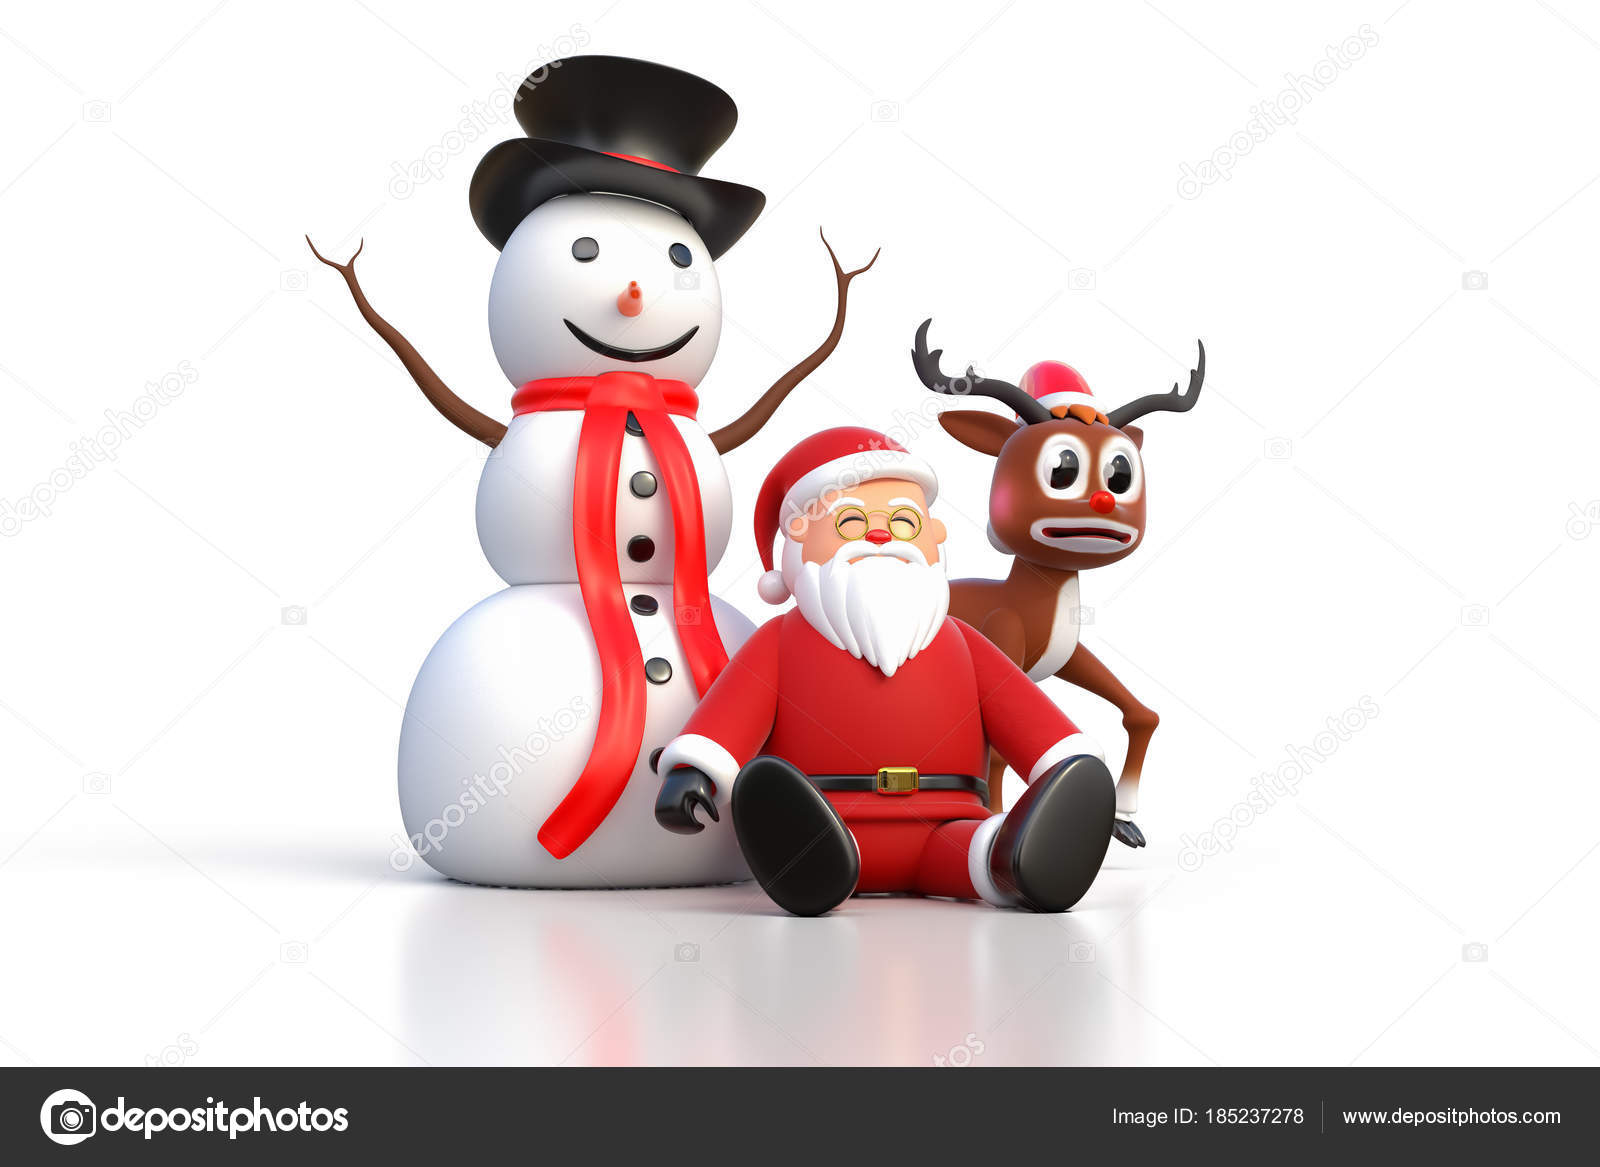 d348b6eb77c5b 3D rendering of Santa Claus sitting on a ground with Snowman and Reindeer  isolated on white background.